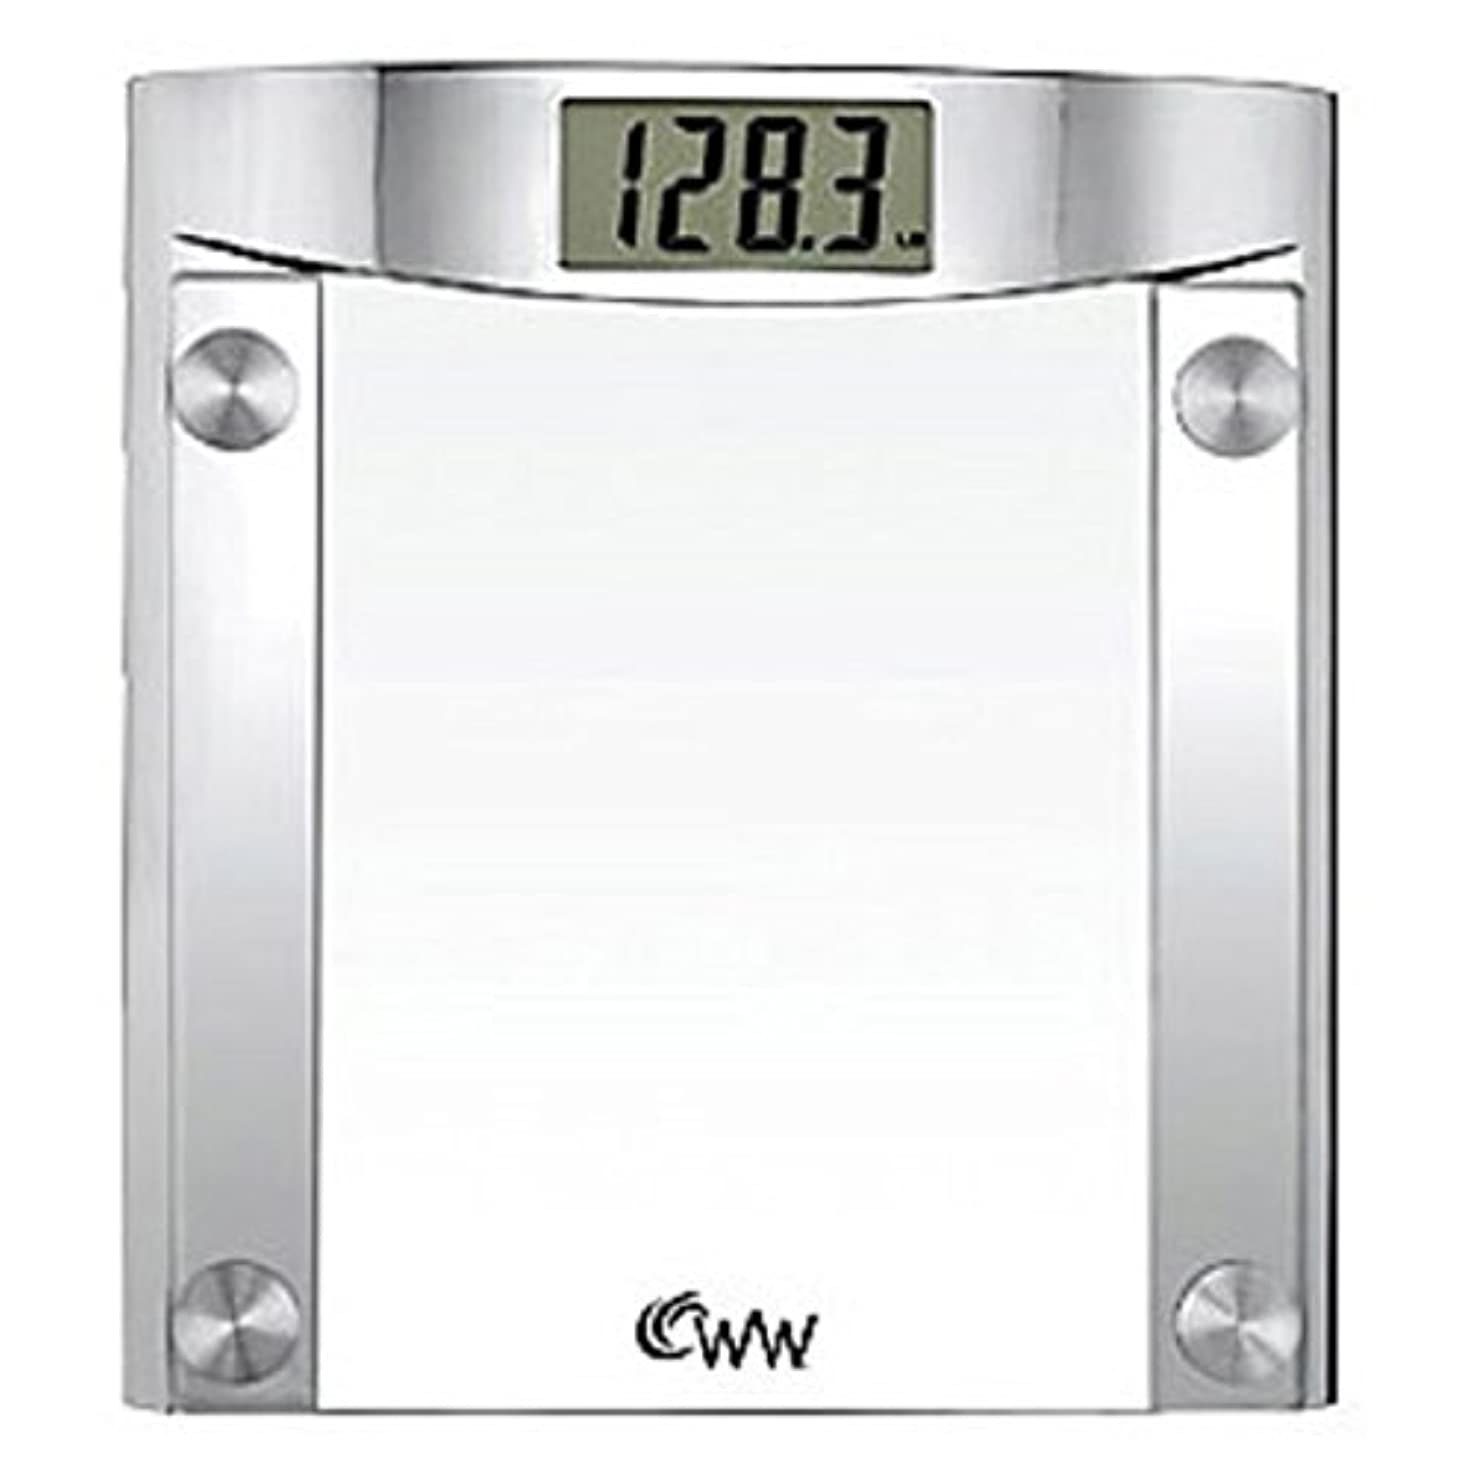 水銀のアラーム可能にするConair CONAIR CNRWW44 WEIGHTWATCHER GLASS SCALE